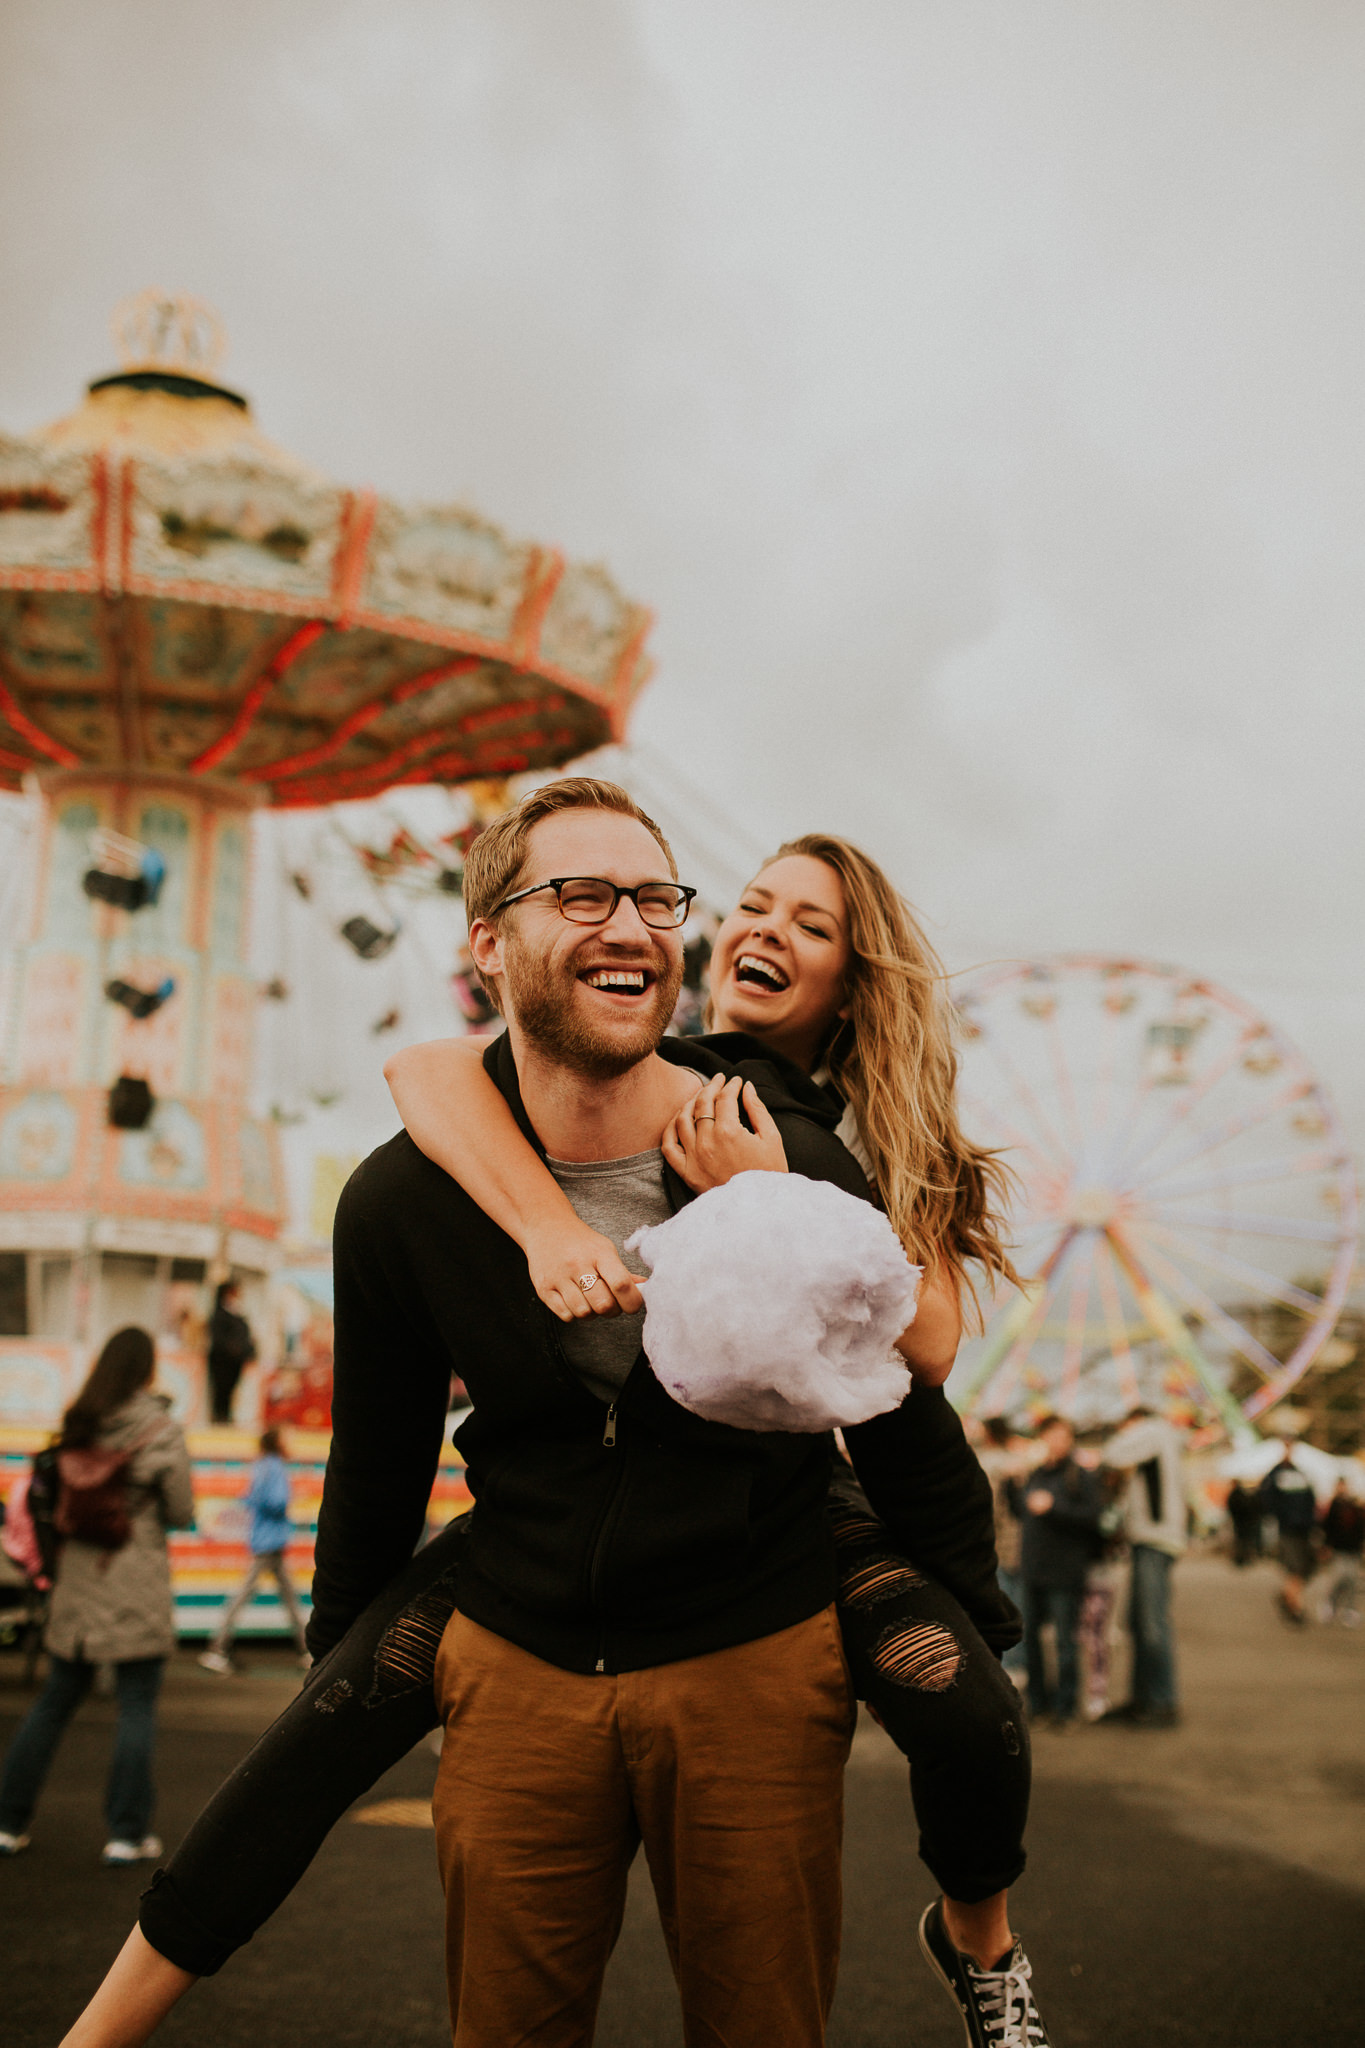 moody warm state fair engagement photography with cotton candy.